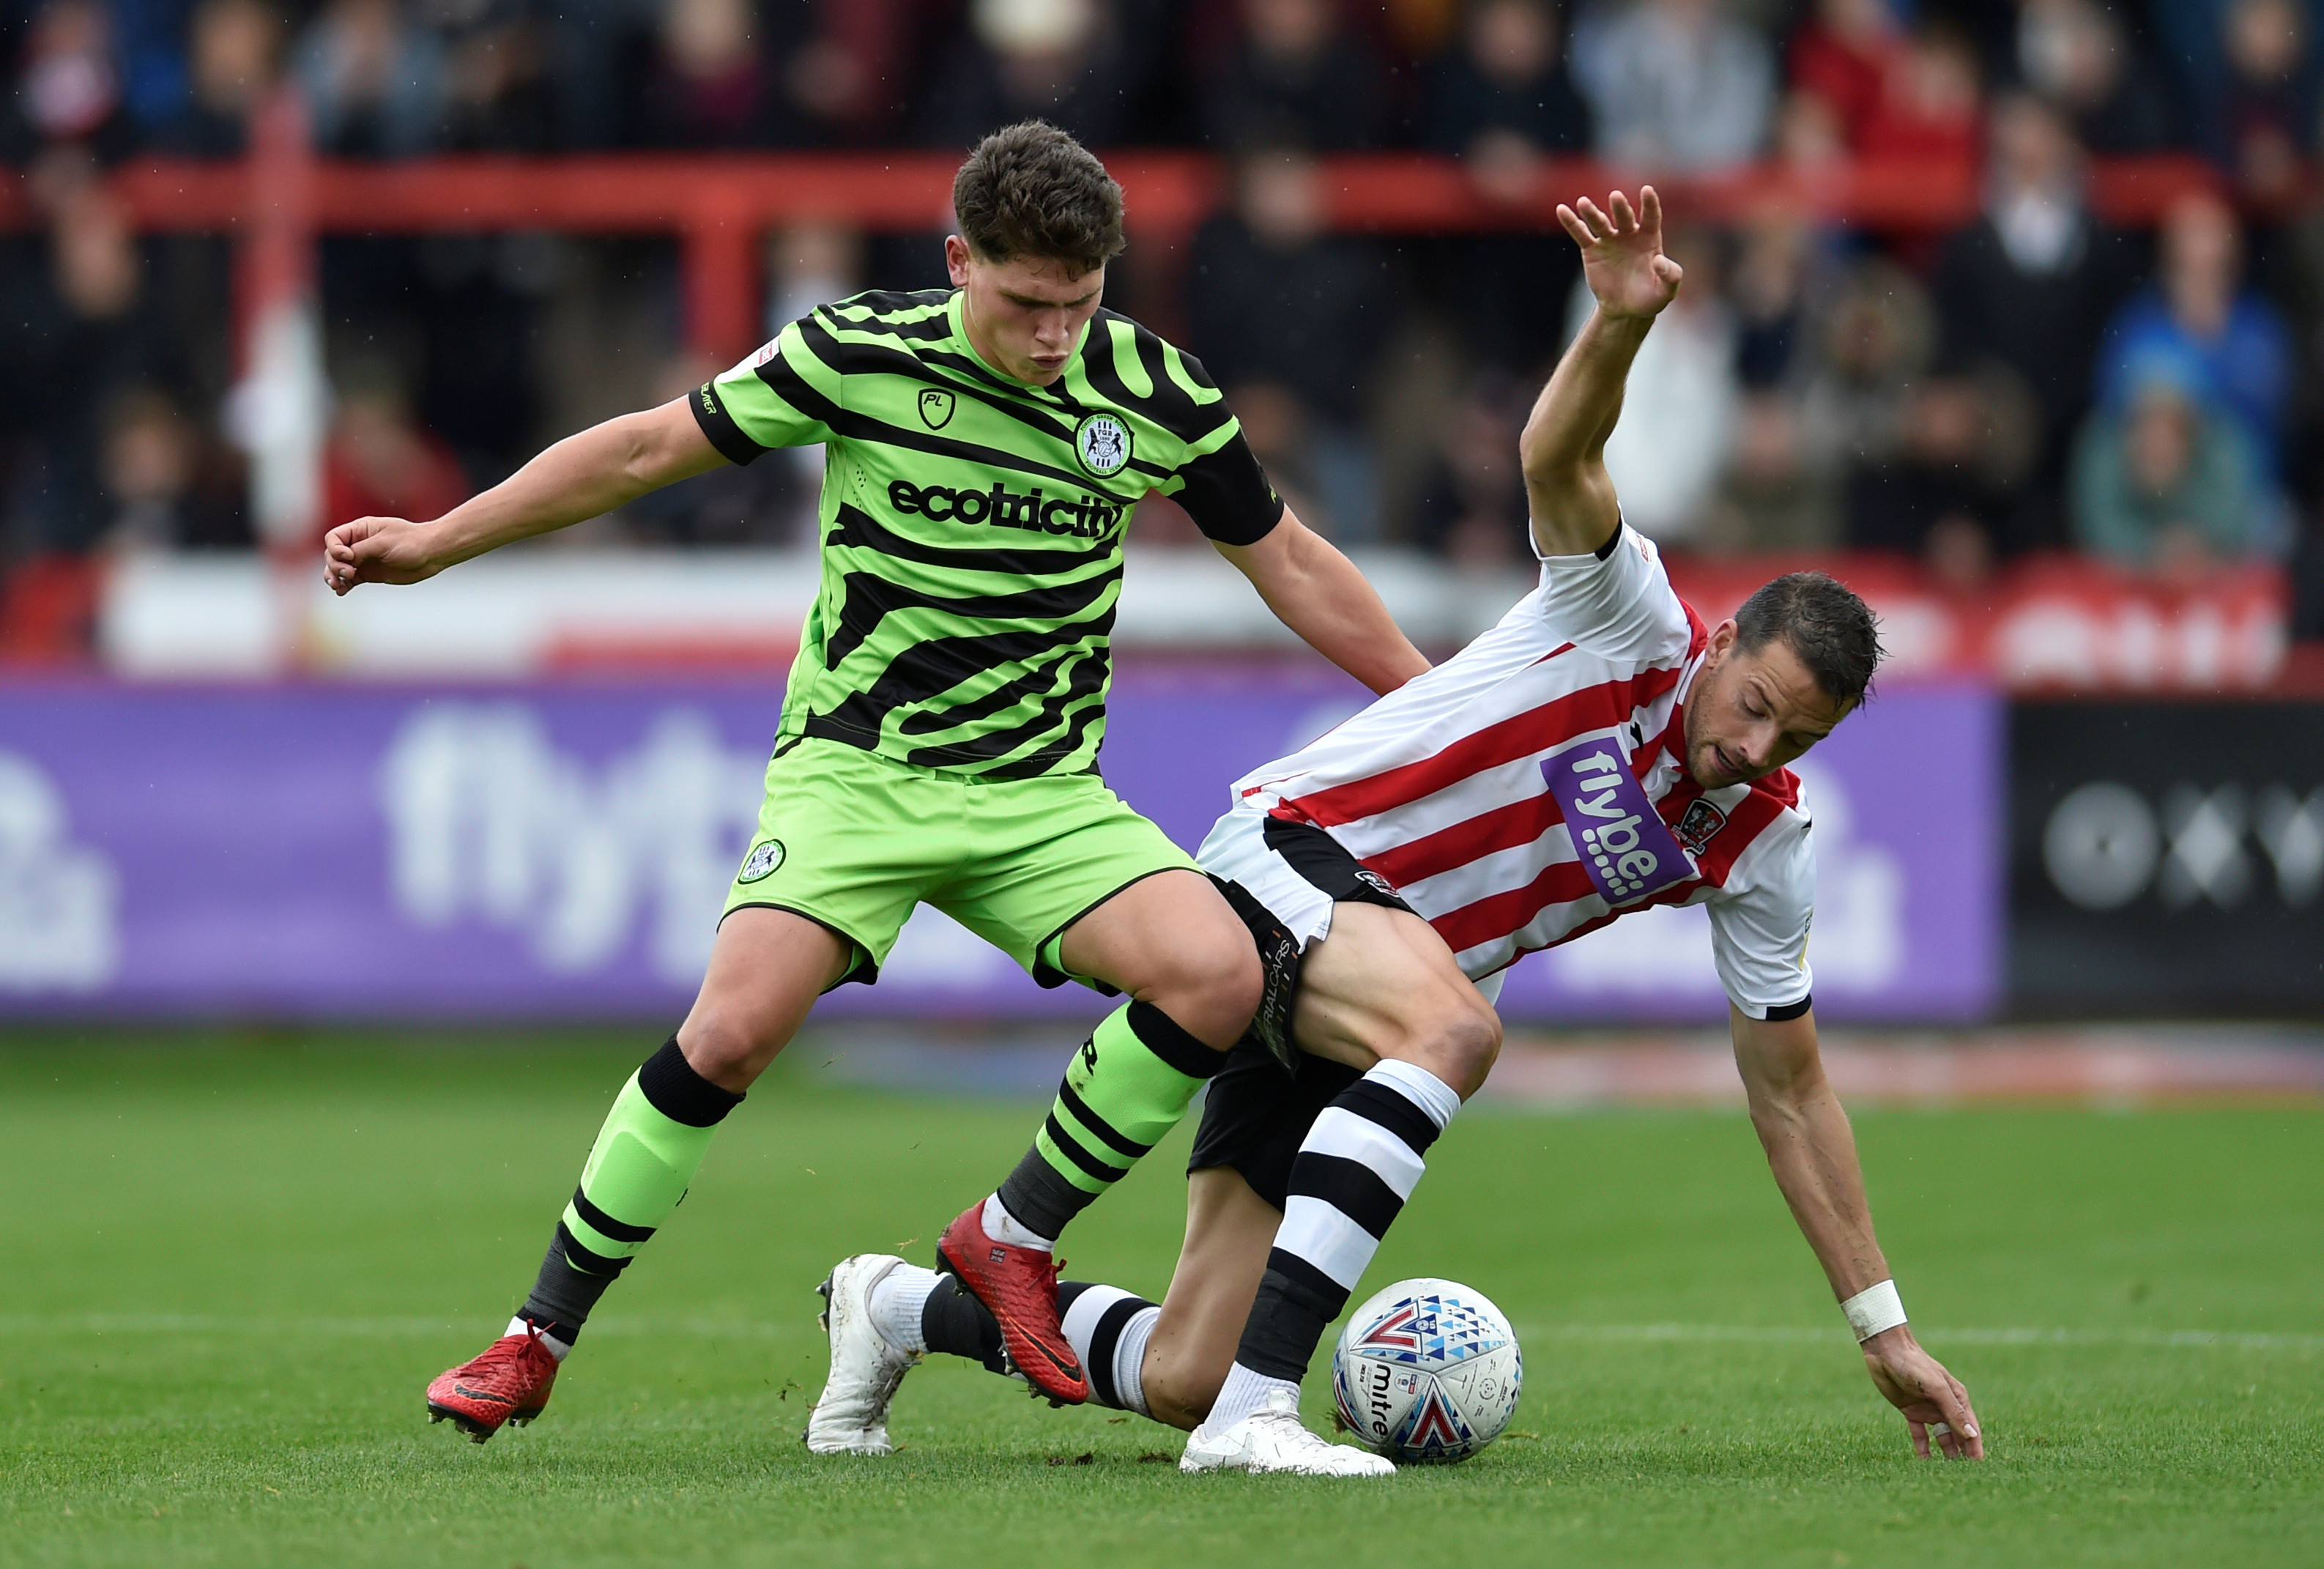 "Soccer Football - League Two - Exeter City v Forest Green Rovers - St James Park, Exeter, Britain - October 12, 2019  Exeter City's Aaron Martin in action with Forest Green Rovers' Matty Stevens  Action Images/Adam Holt  EDITORIAL USE ONLY. No use with unauthorized audio, video, data, fixture lists, club/league logos or ""live"" services. Online in-match use limited to 75 images, no video emulation. No use in betting, games or single club/league/player publications.  Please contact your account representative for further details. - RC16AB92B8A0"